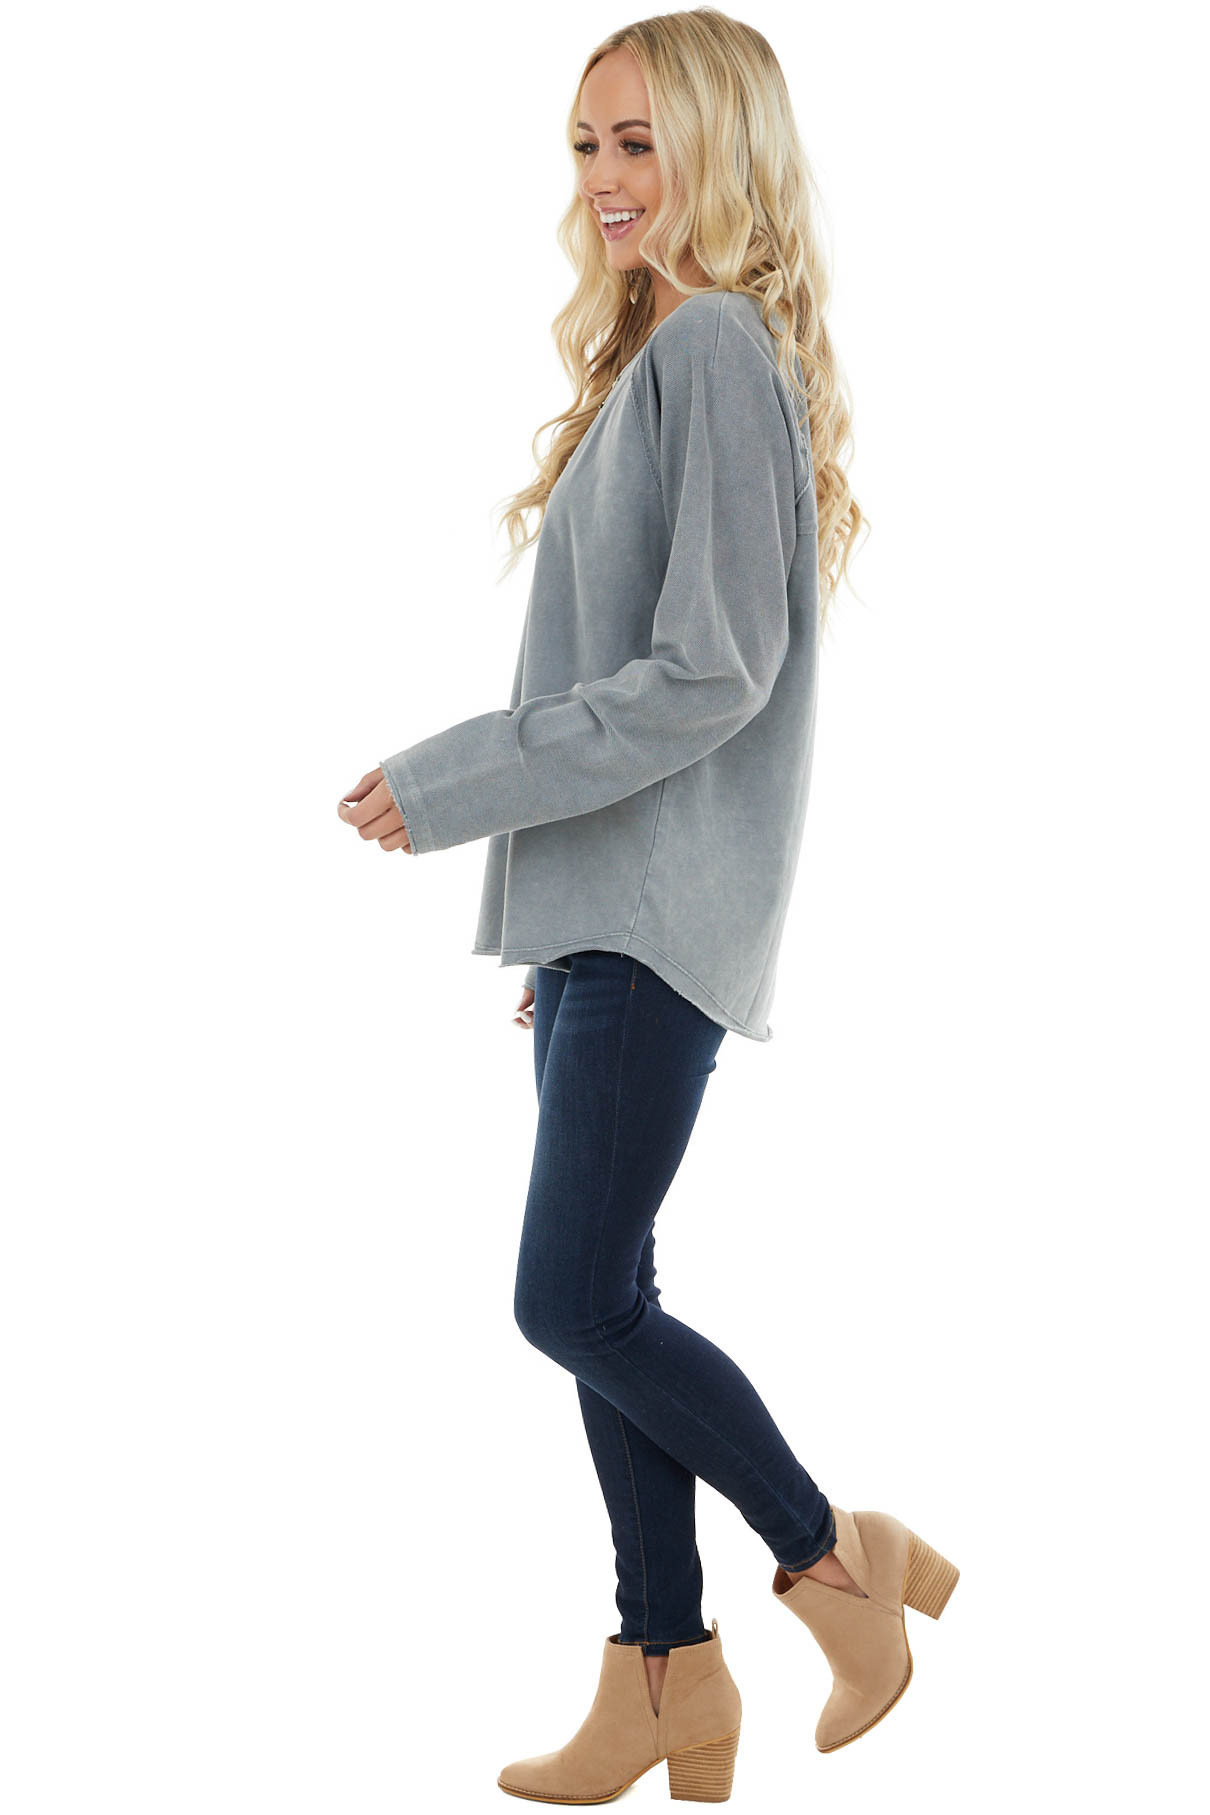 Vintage Slate Grey Top with Contrast Knit and Raw Edges